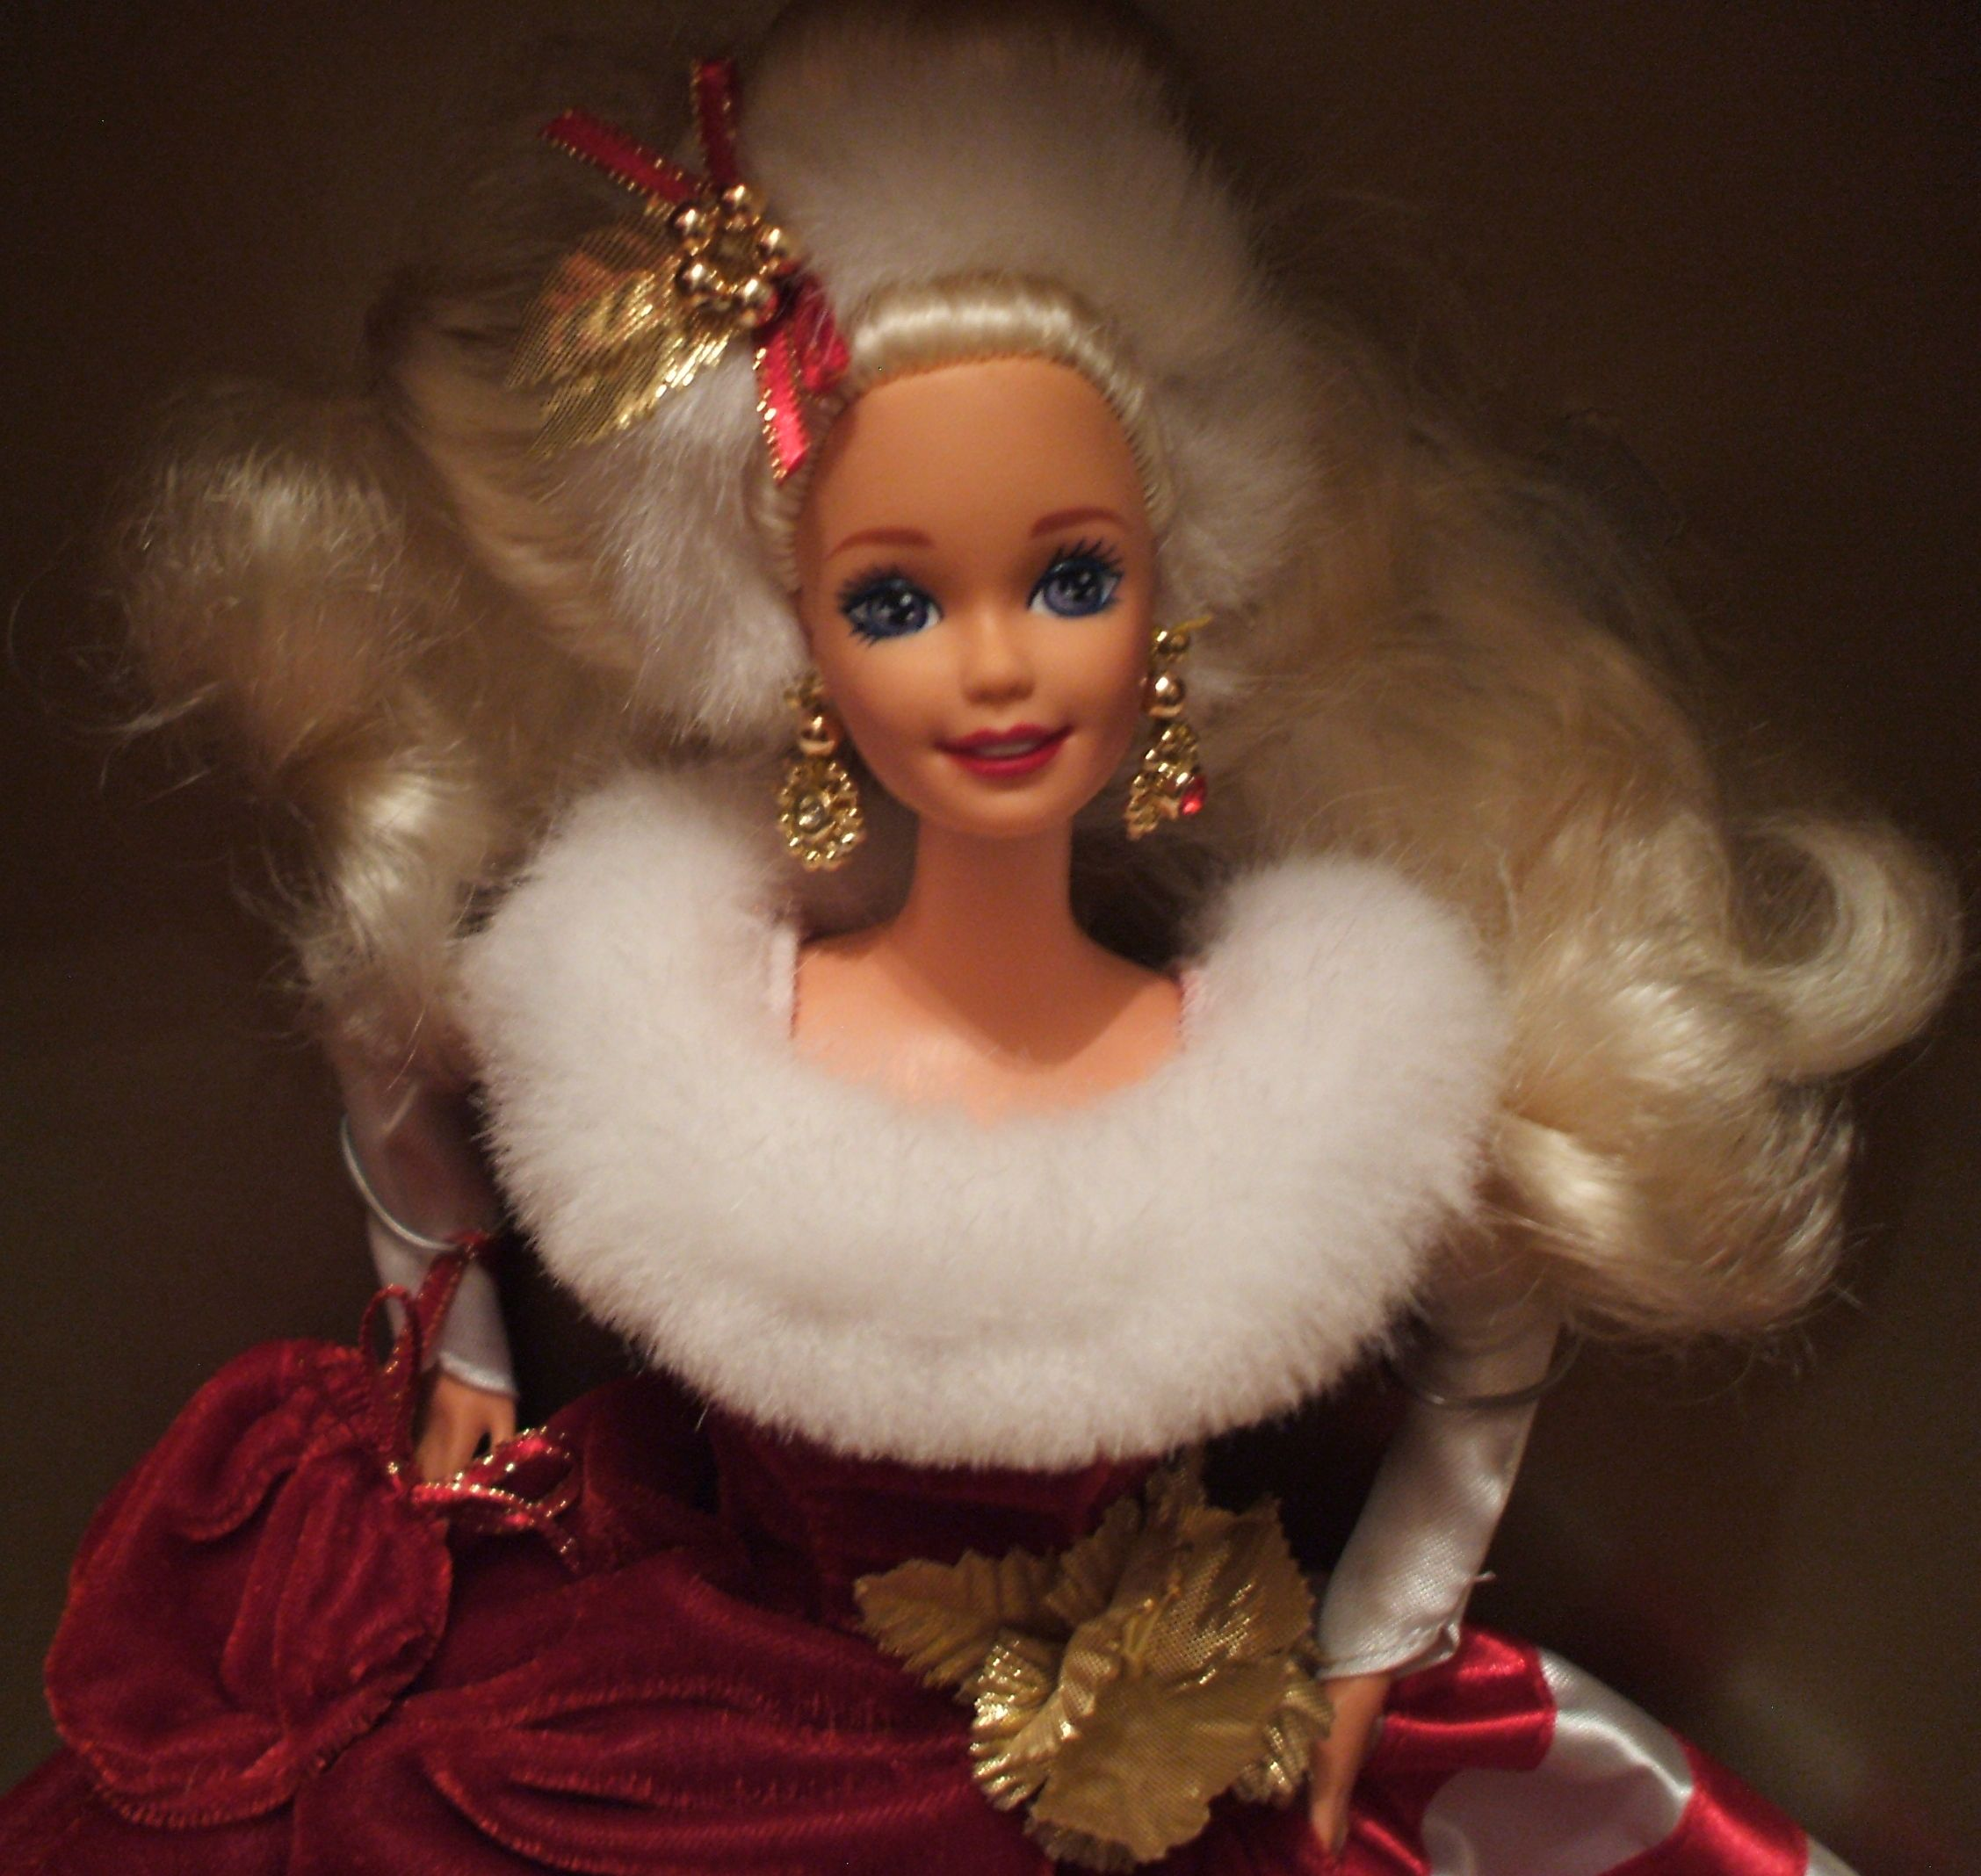 JUMPER BARBIE DOLL HOLIDAY SISTERS RED VELVET WHITE FAUX FUR PLAID BOW ACCESSORY